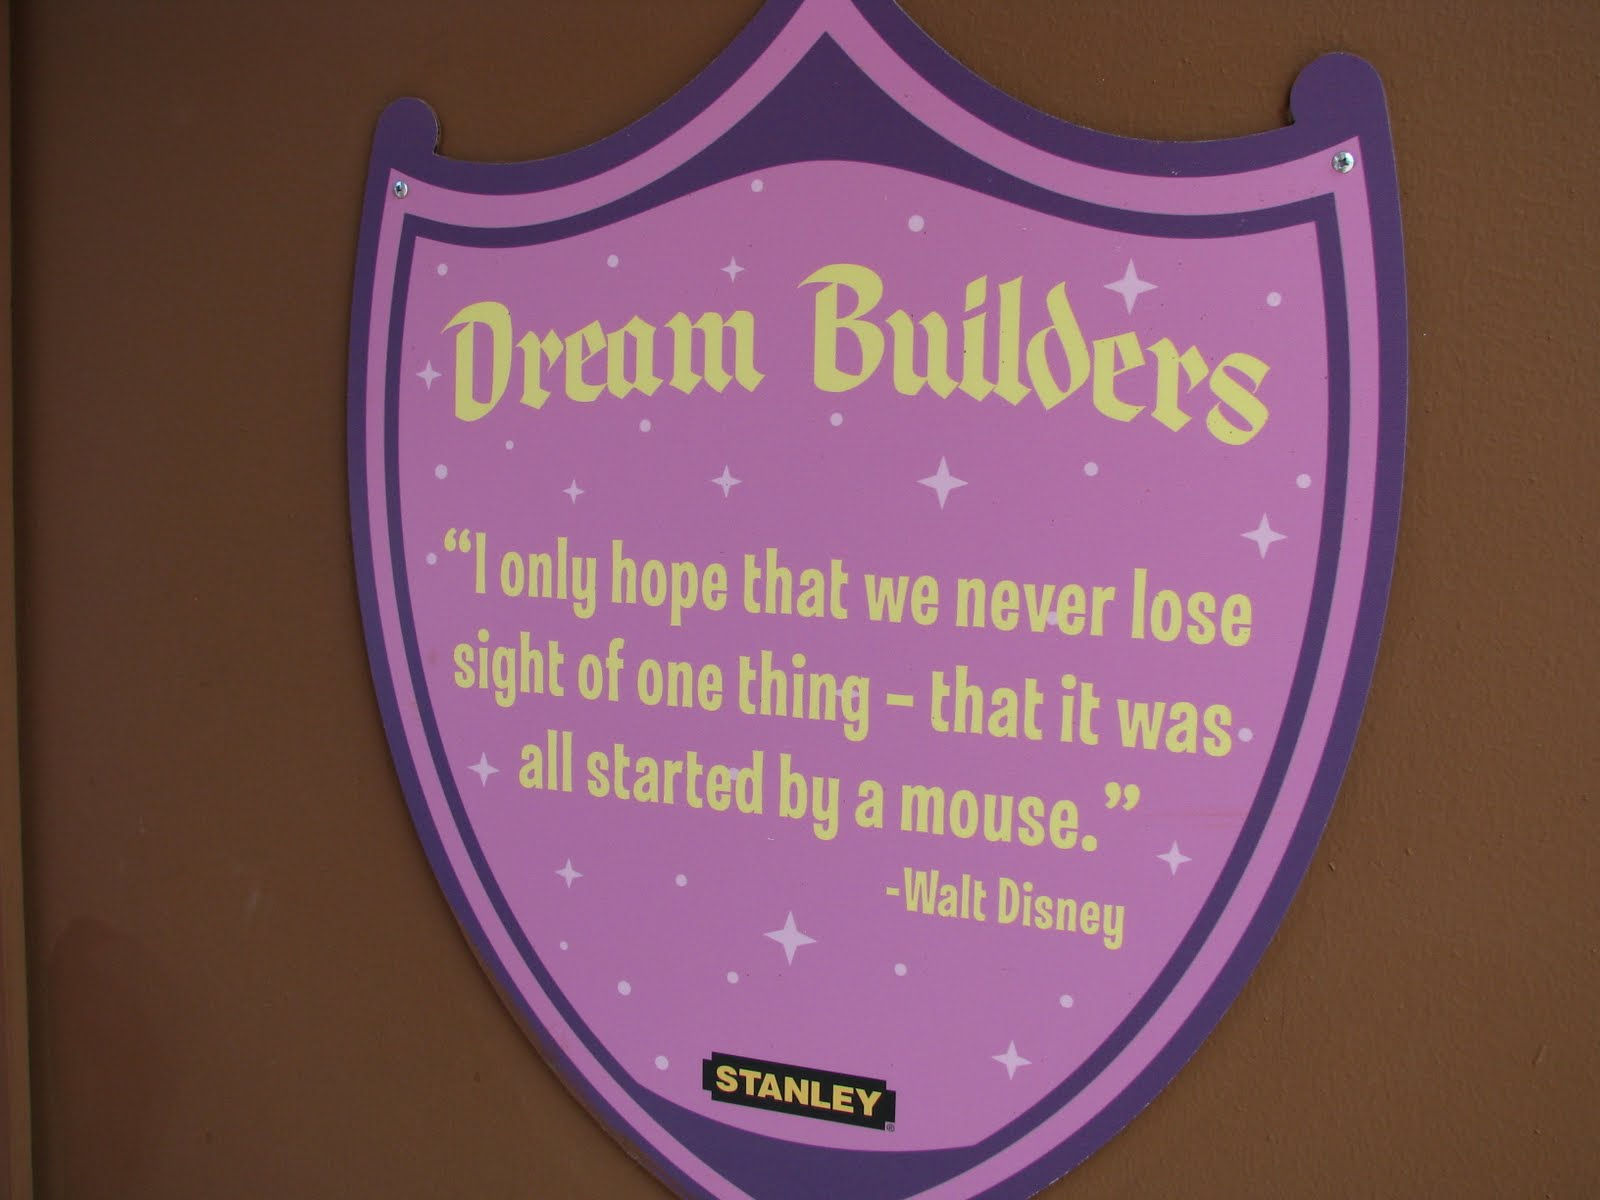 Magical Quotes Quotes From Walt Disney At The Magic Kingdom  Disney World Blog